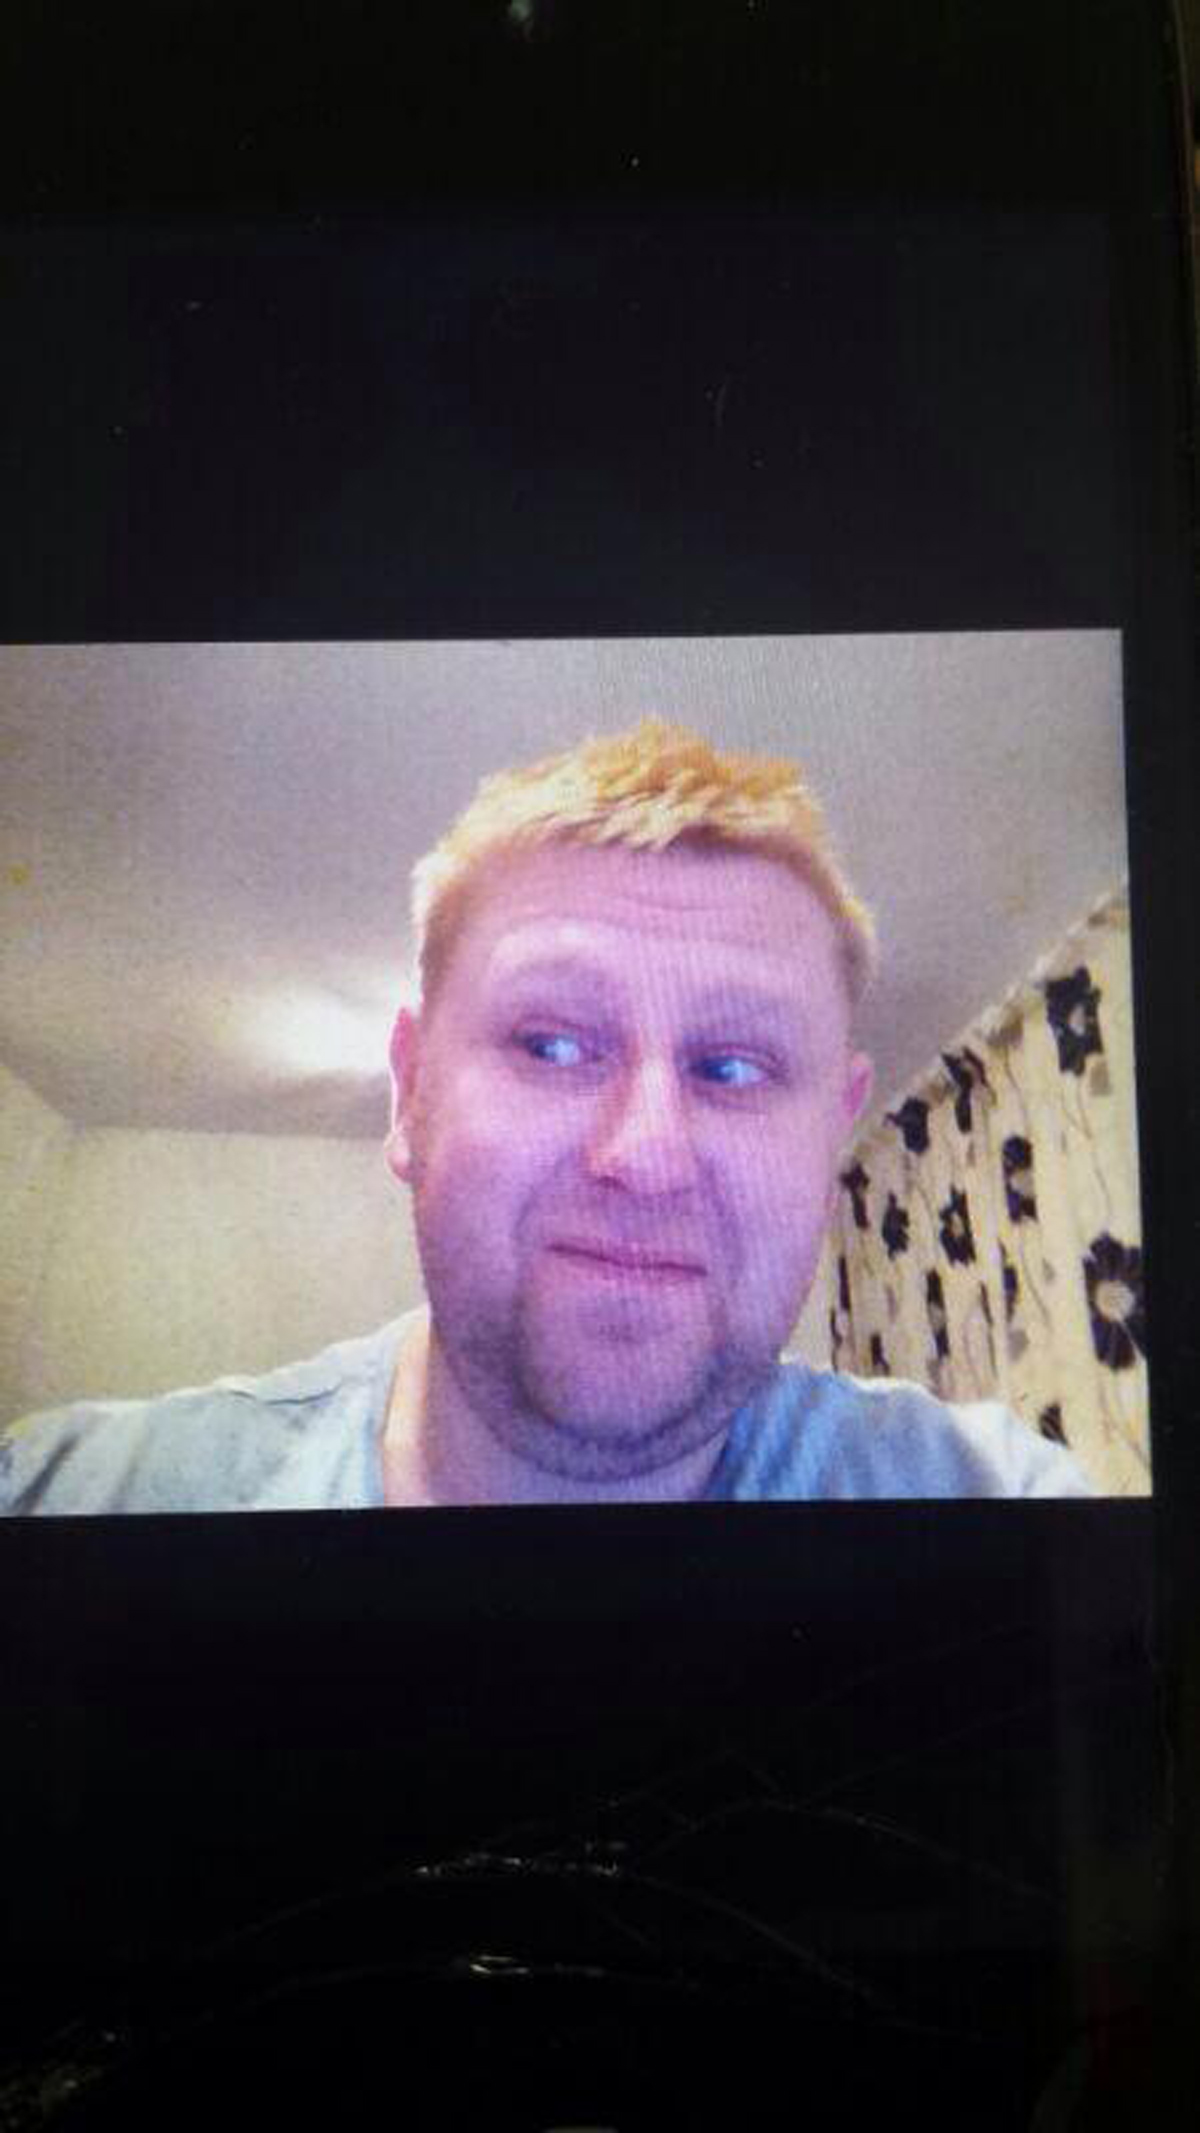 Have you seen missing Garston man?